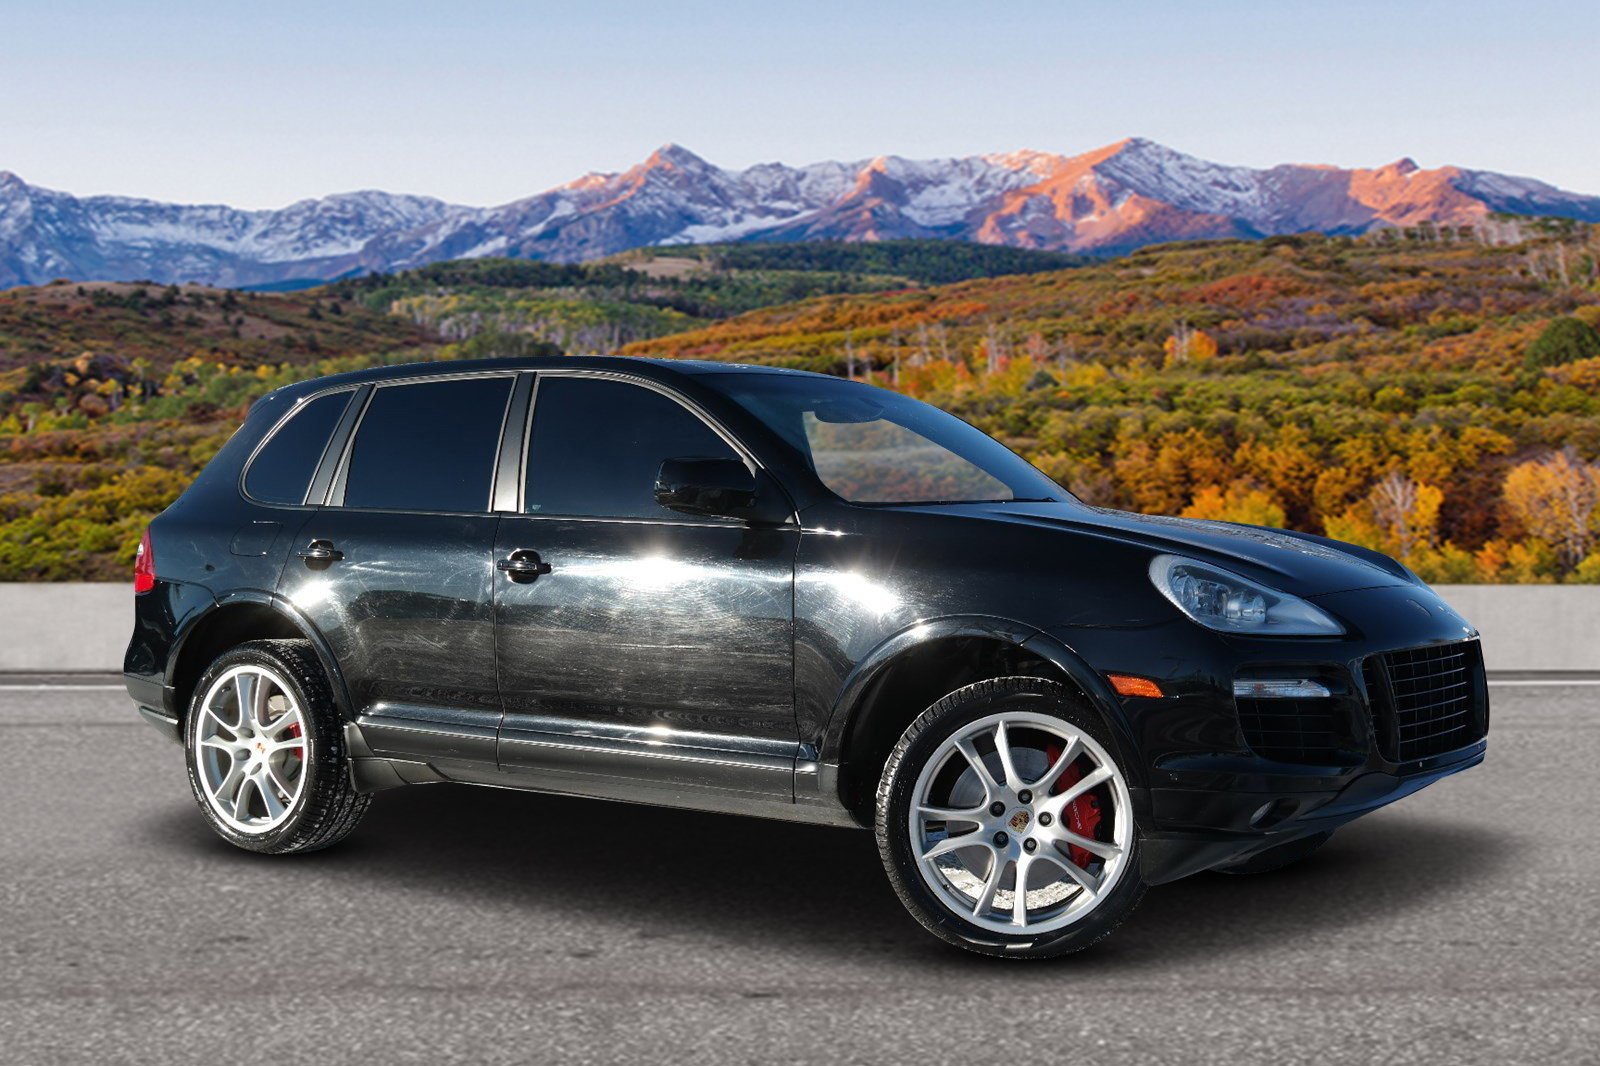 Pre-Owned 2009 Porsche Cayenne Turbo S